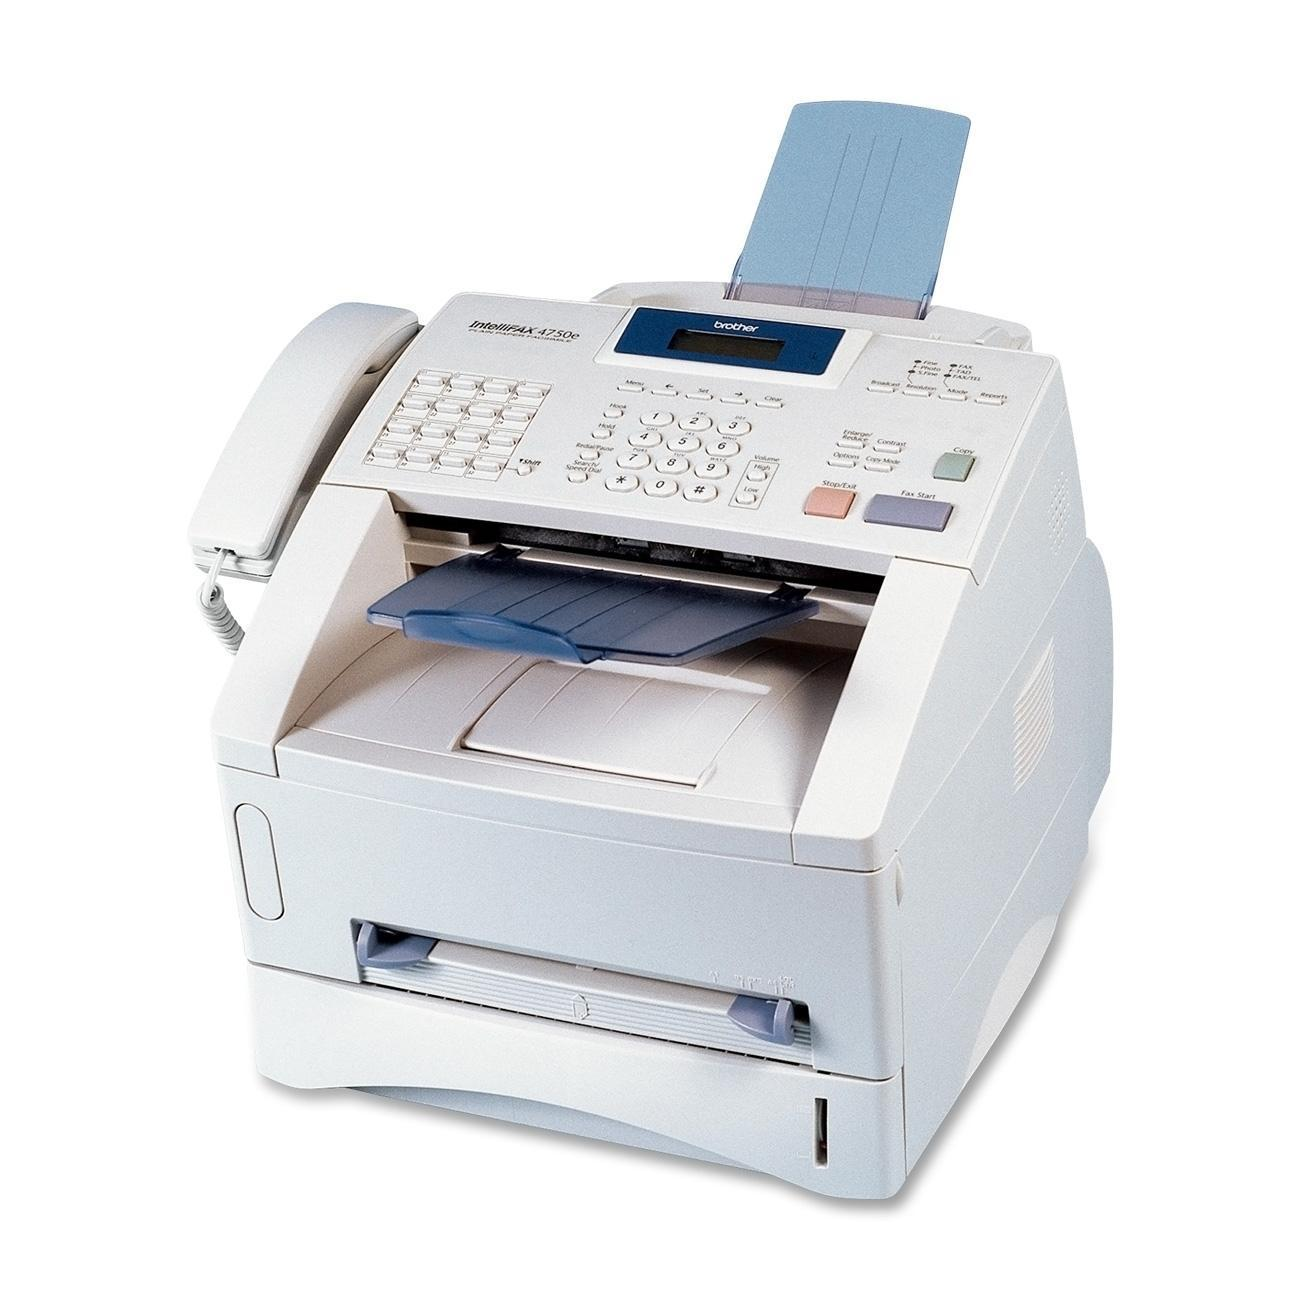 Brother IntelliFAX 4750e Laser Multifunction Printer - Monochrome - Plain Paper Print - Desktop, Off White